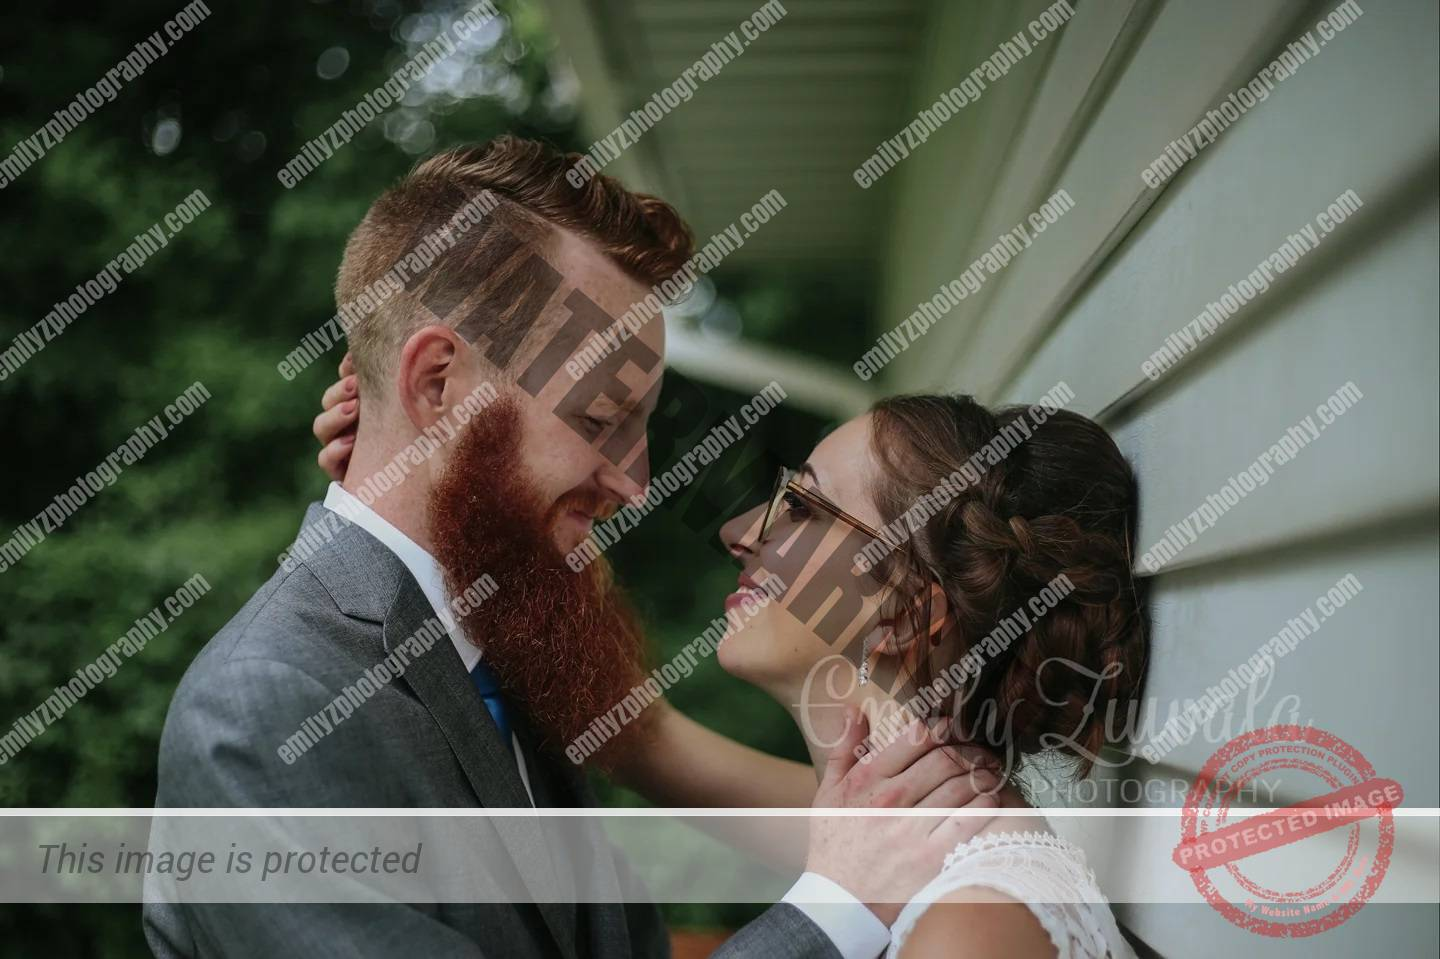 So if rain on your wedding day is good luck, a tornado  has to be extra good luc...